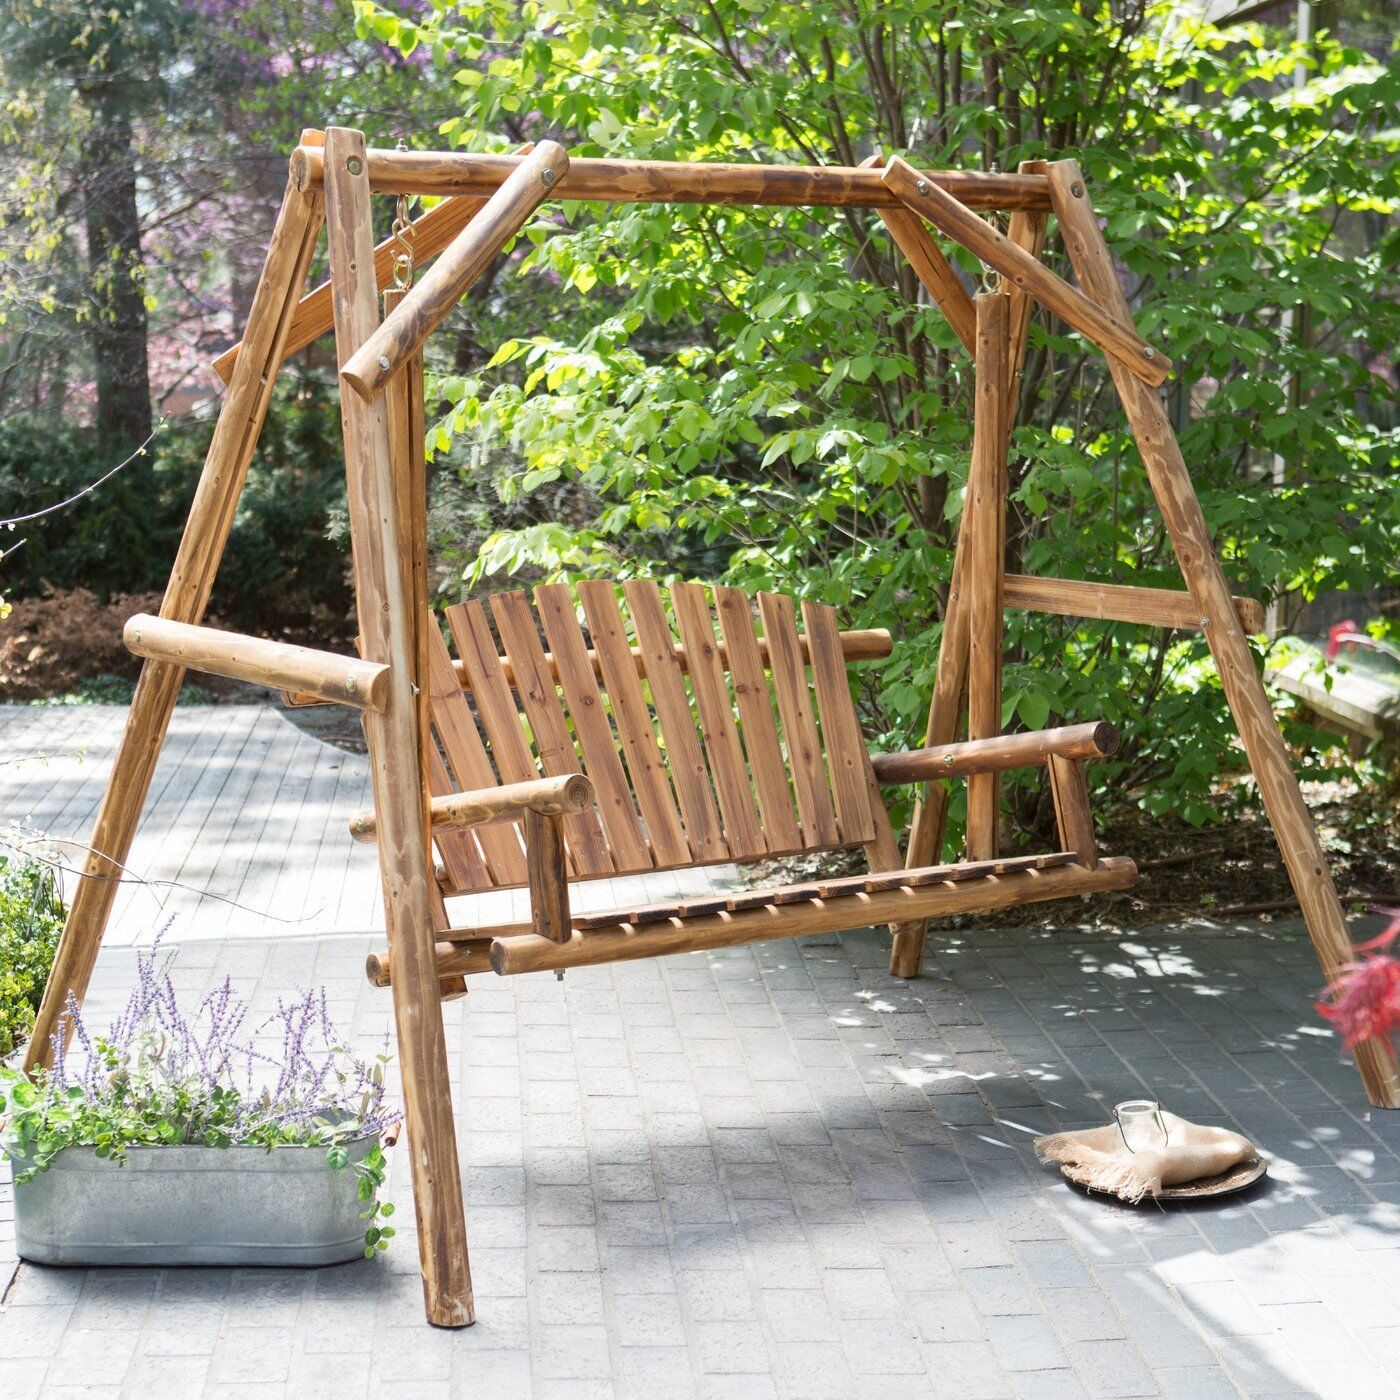 Wood Porch Swing Bench Deck Yard Outdoor Garden Patio